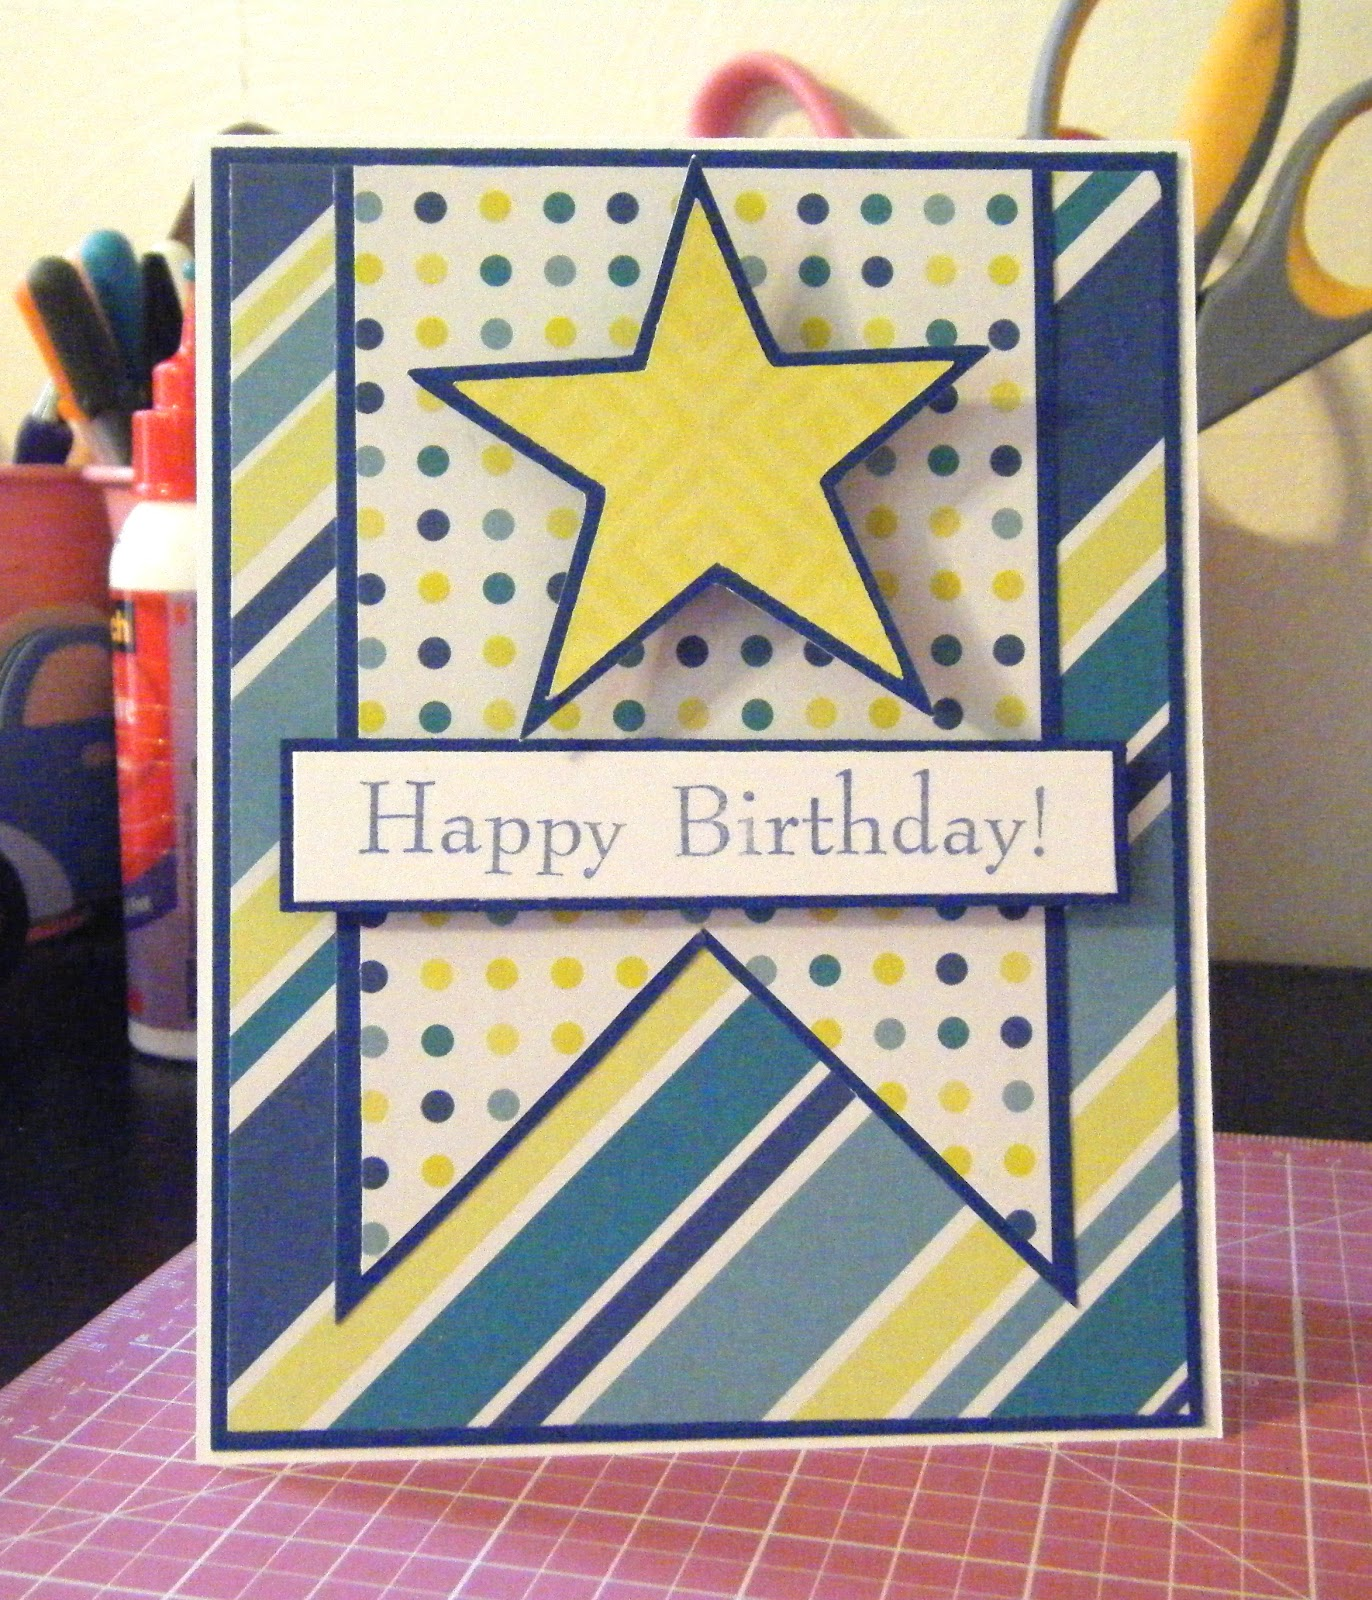 12 year old boy birthday card ideas ; blue+star+bday+1